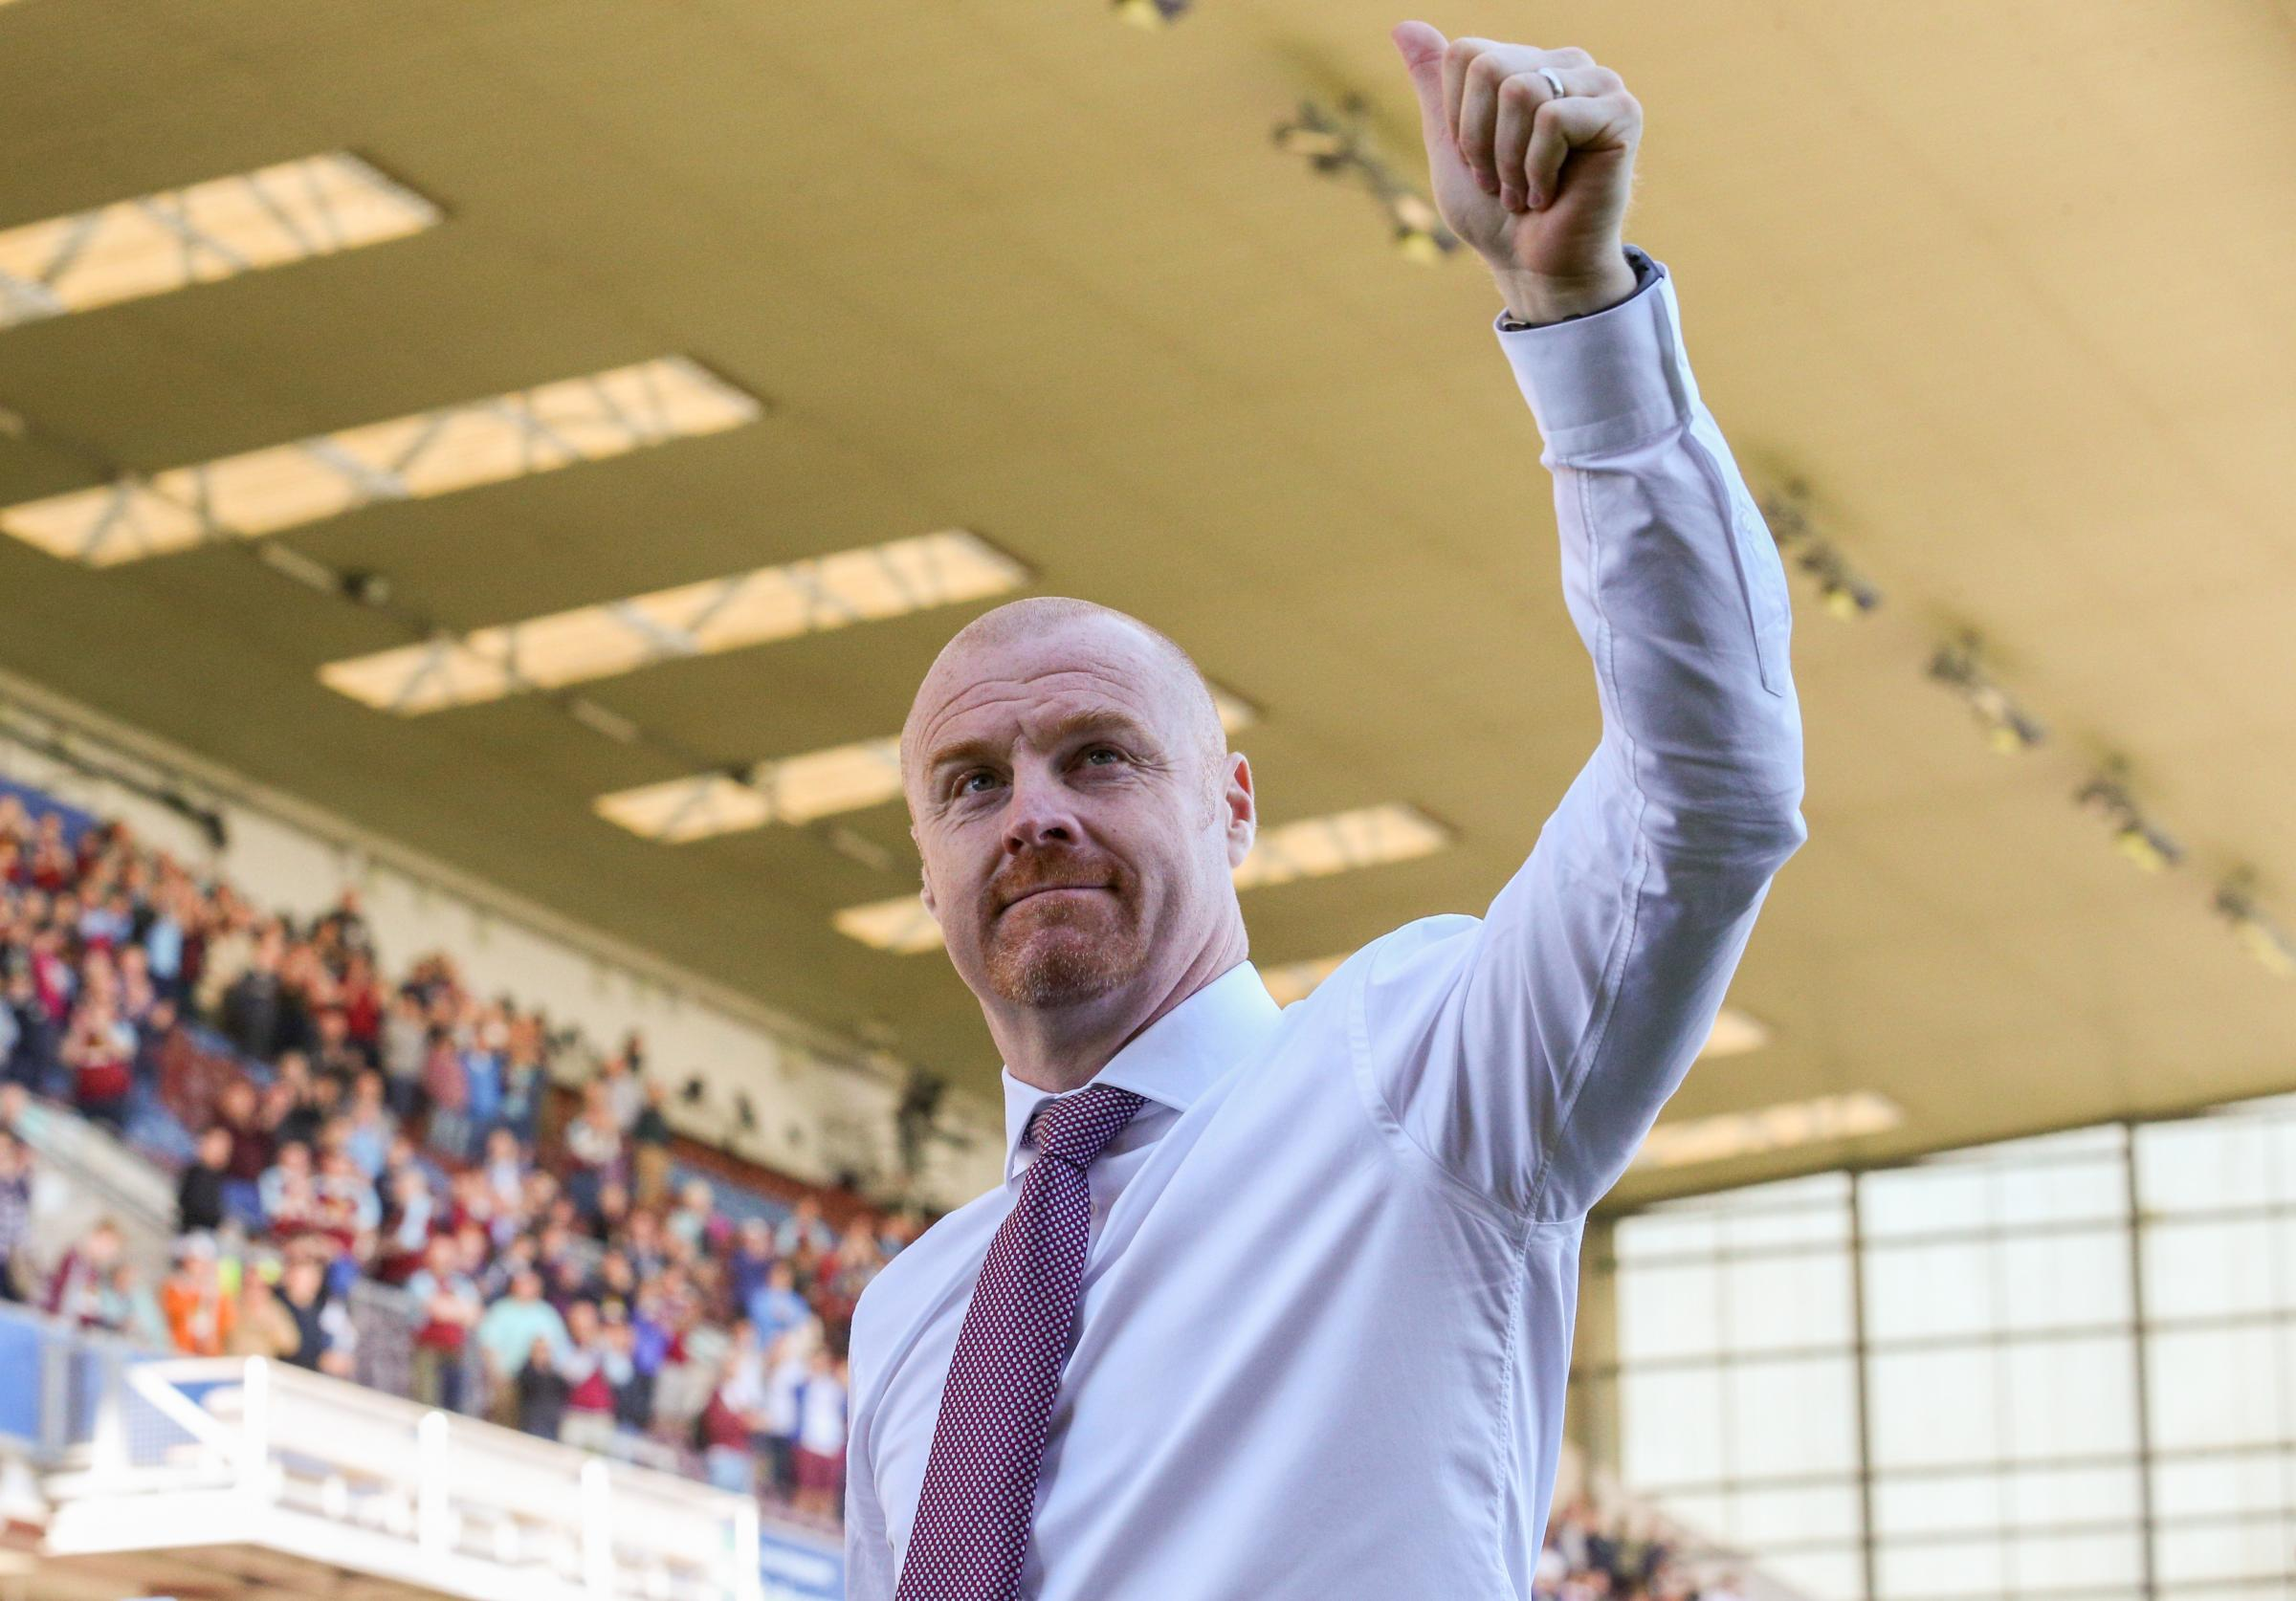 Sean Dyche led Burnley to seventh in the Premier League, making nearly £120million in the process